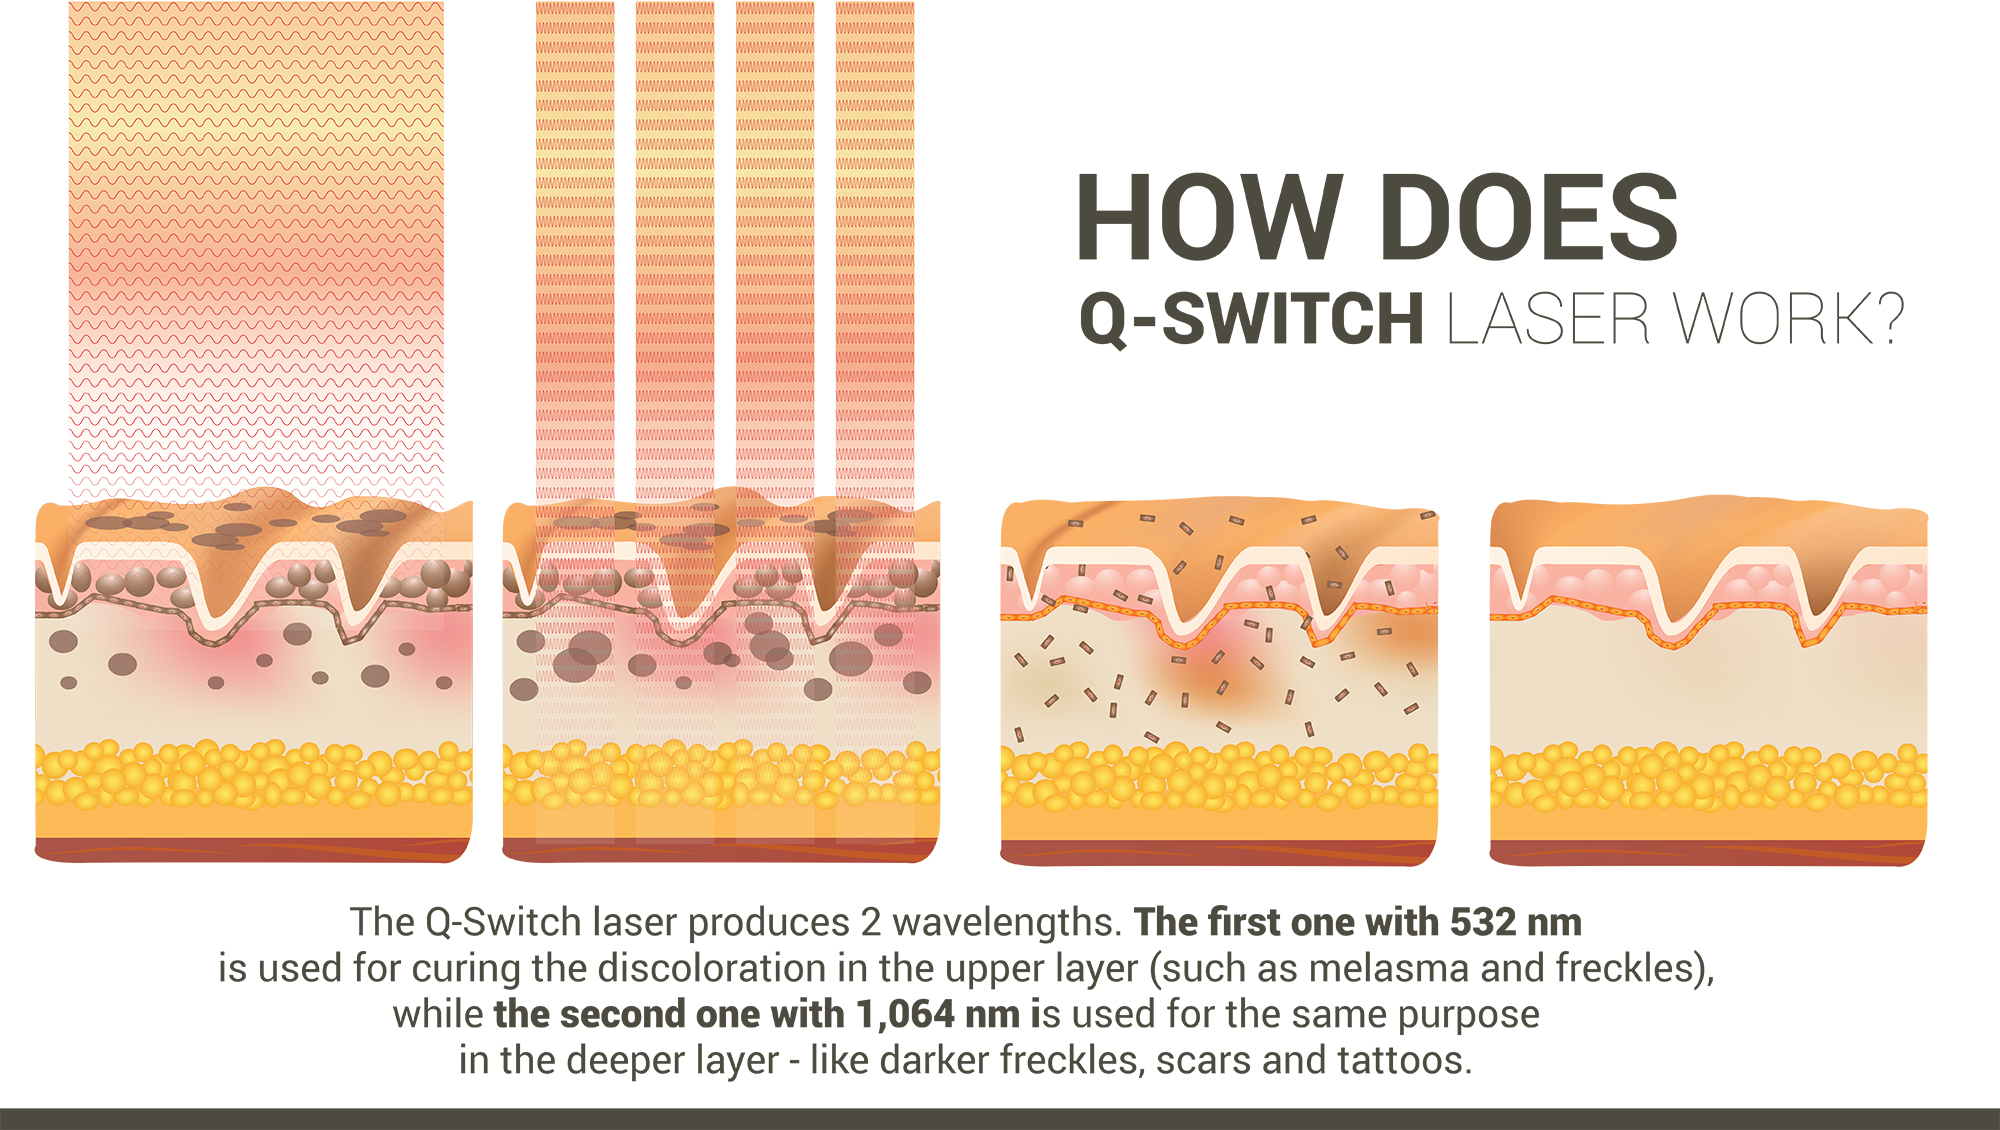 How does Q-Switch Laser work